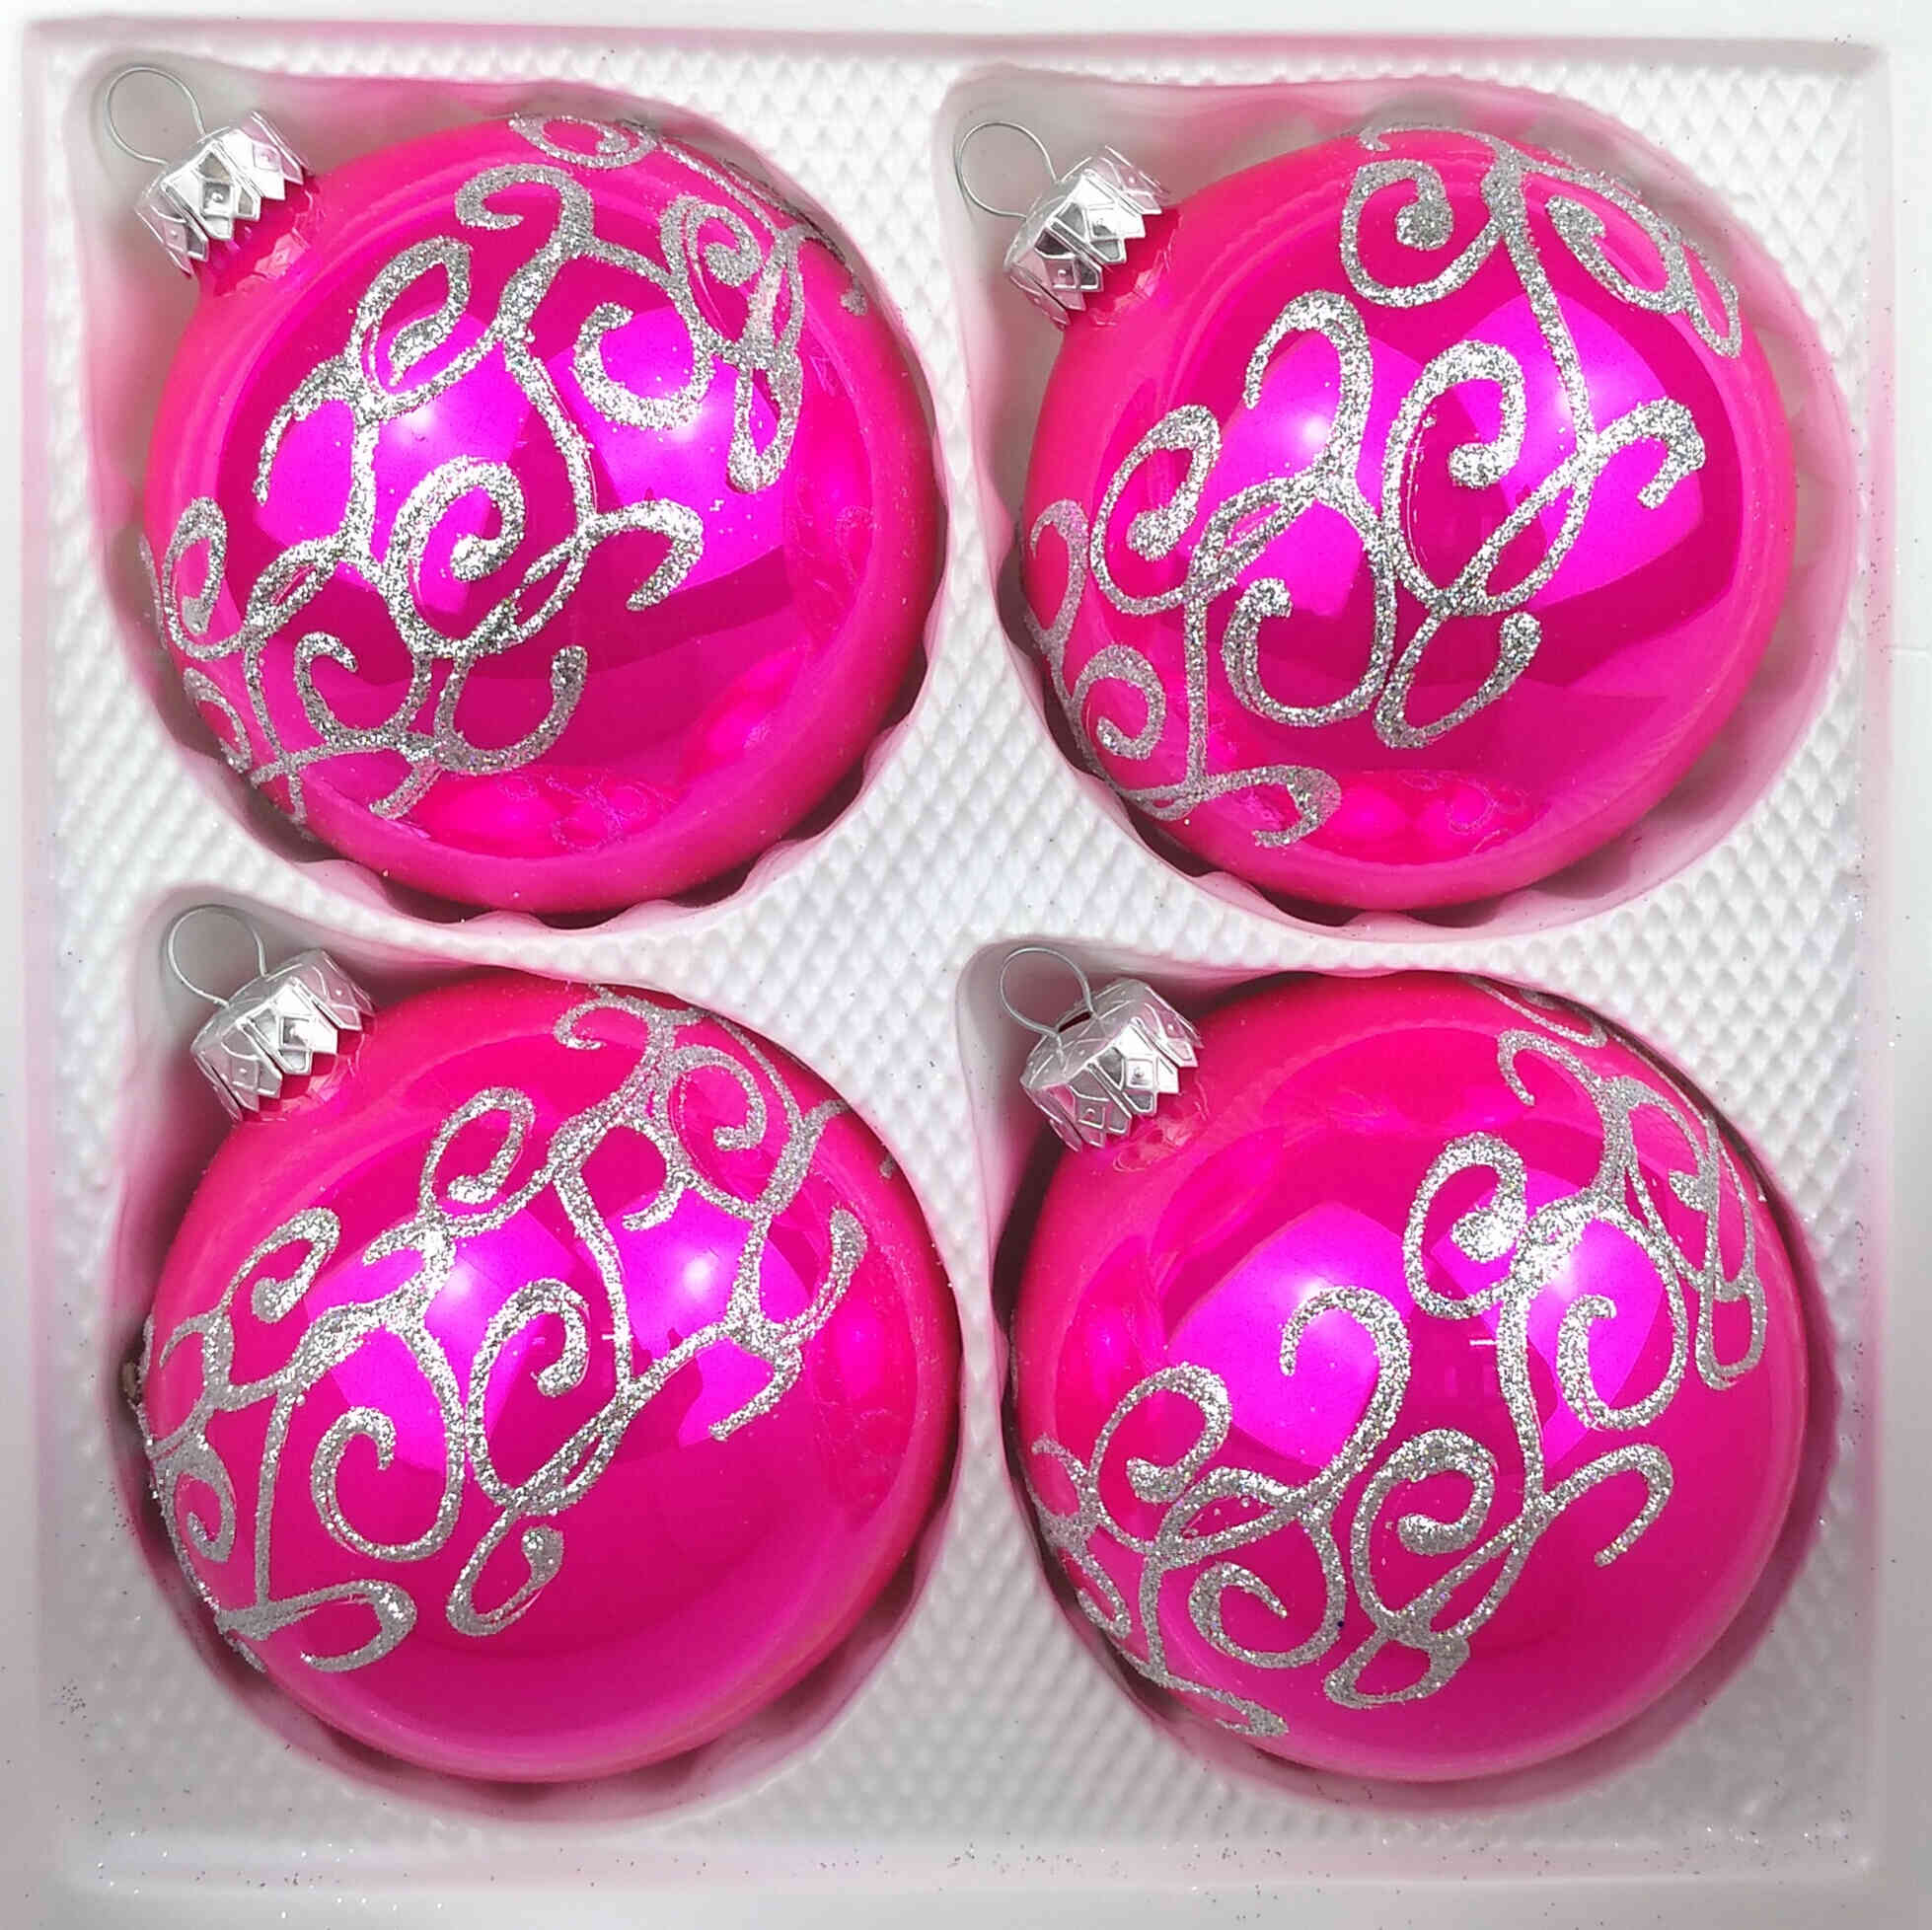 4 Handmade Christmas Ornaments High Luster Pink Balls 3 15